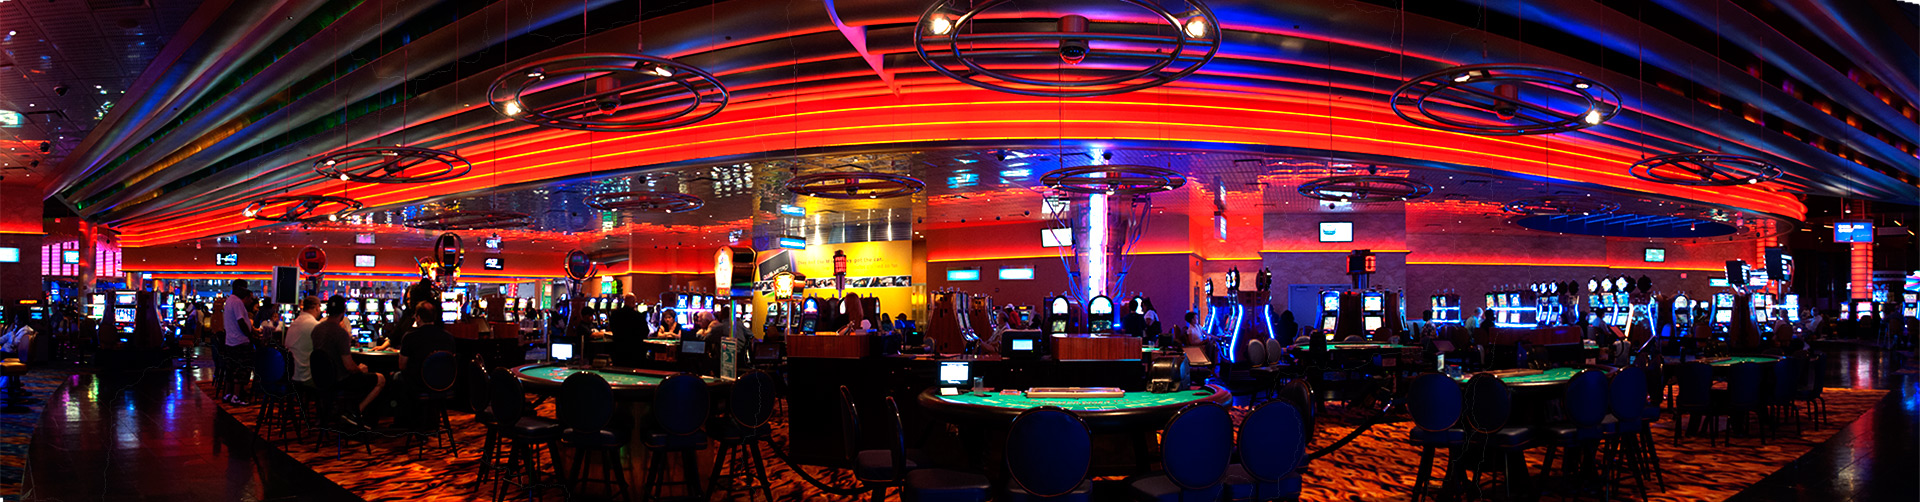 Little river casino thursday promotions schedule